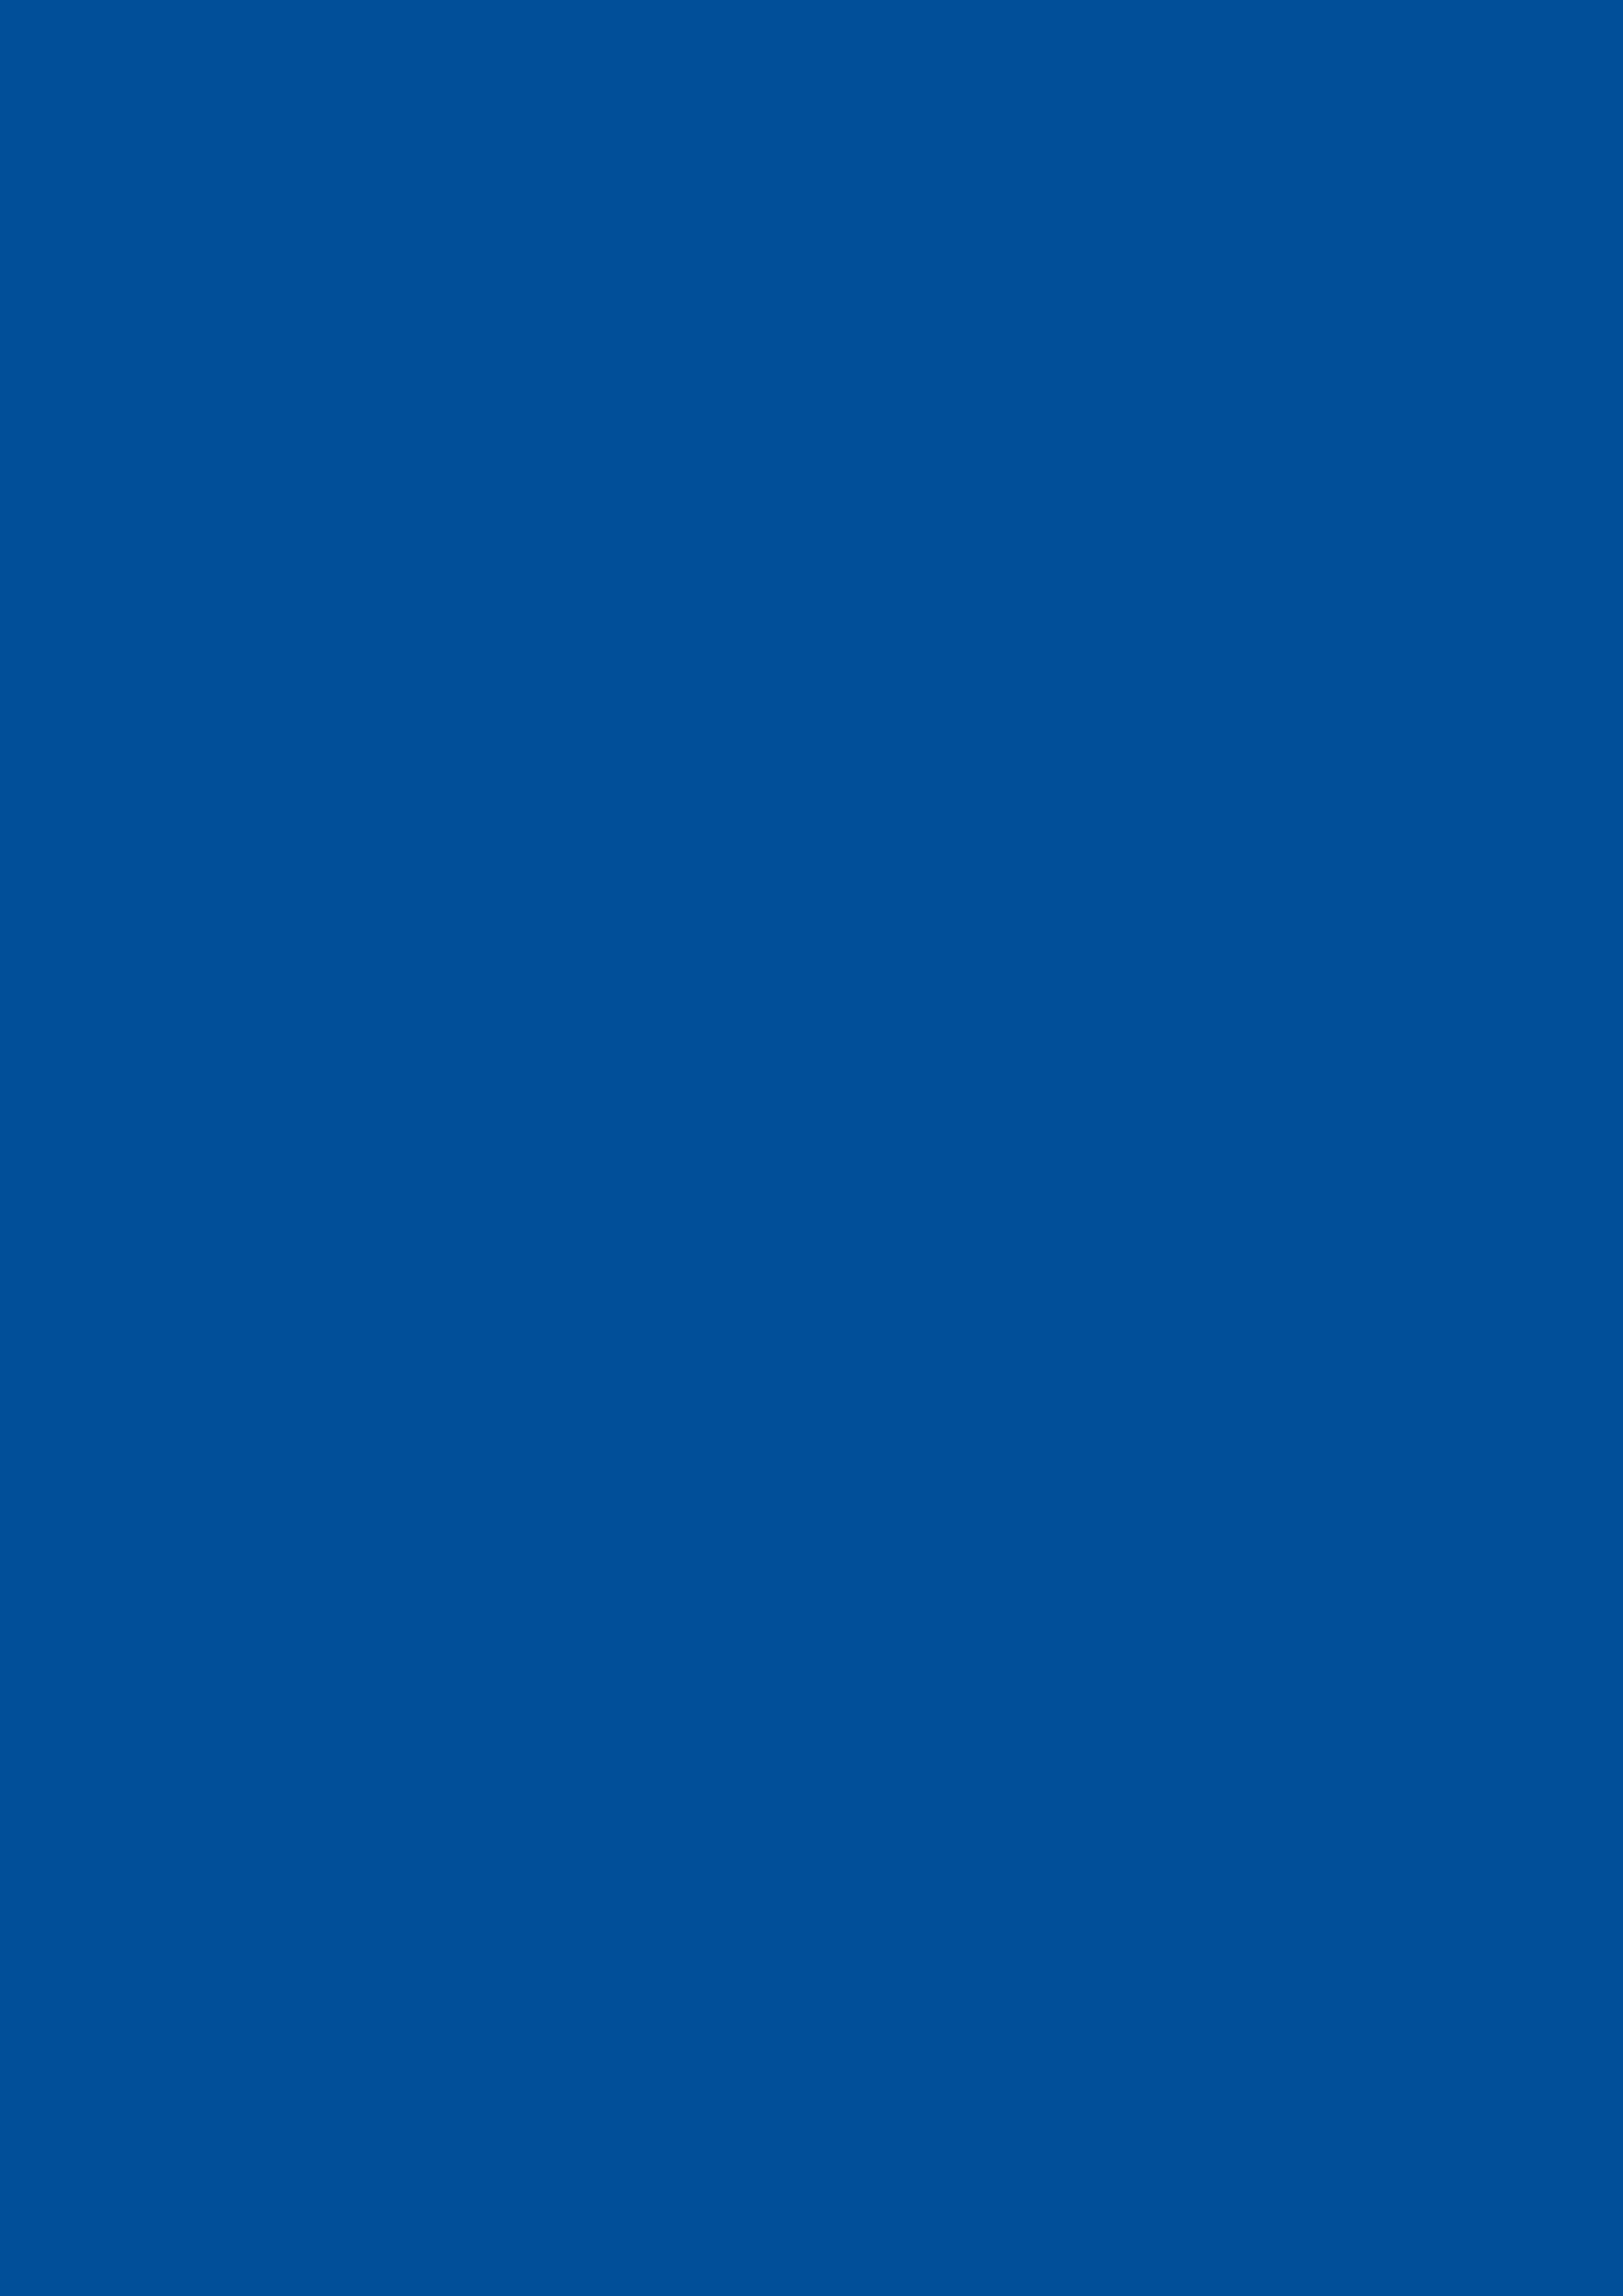 2480x3508 USAFA Blue Solid Color Background